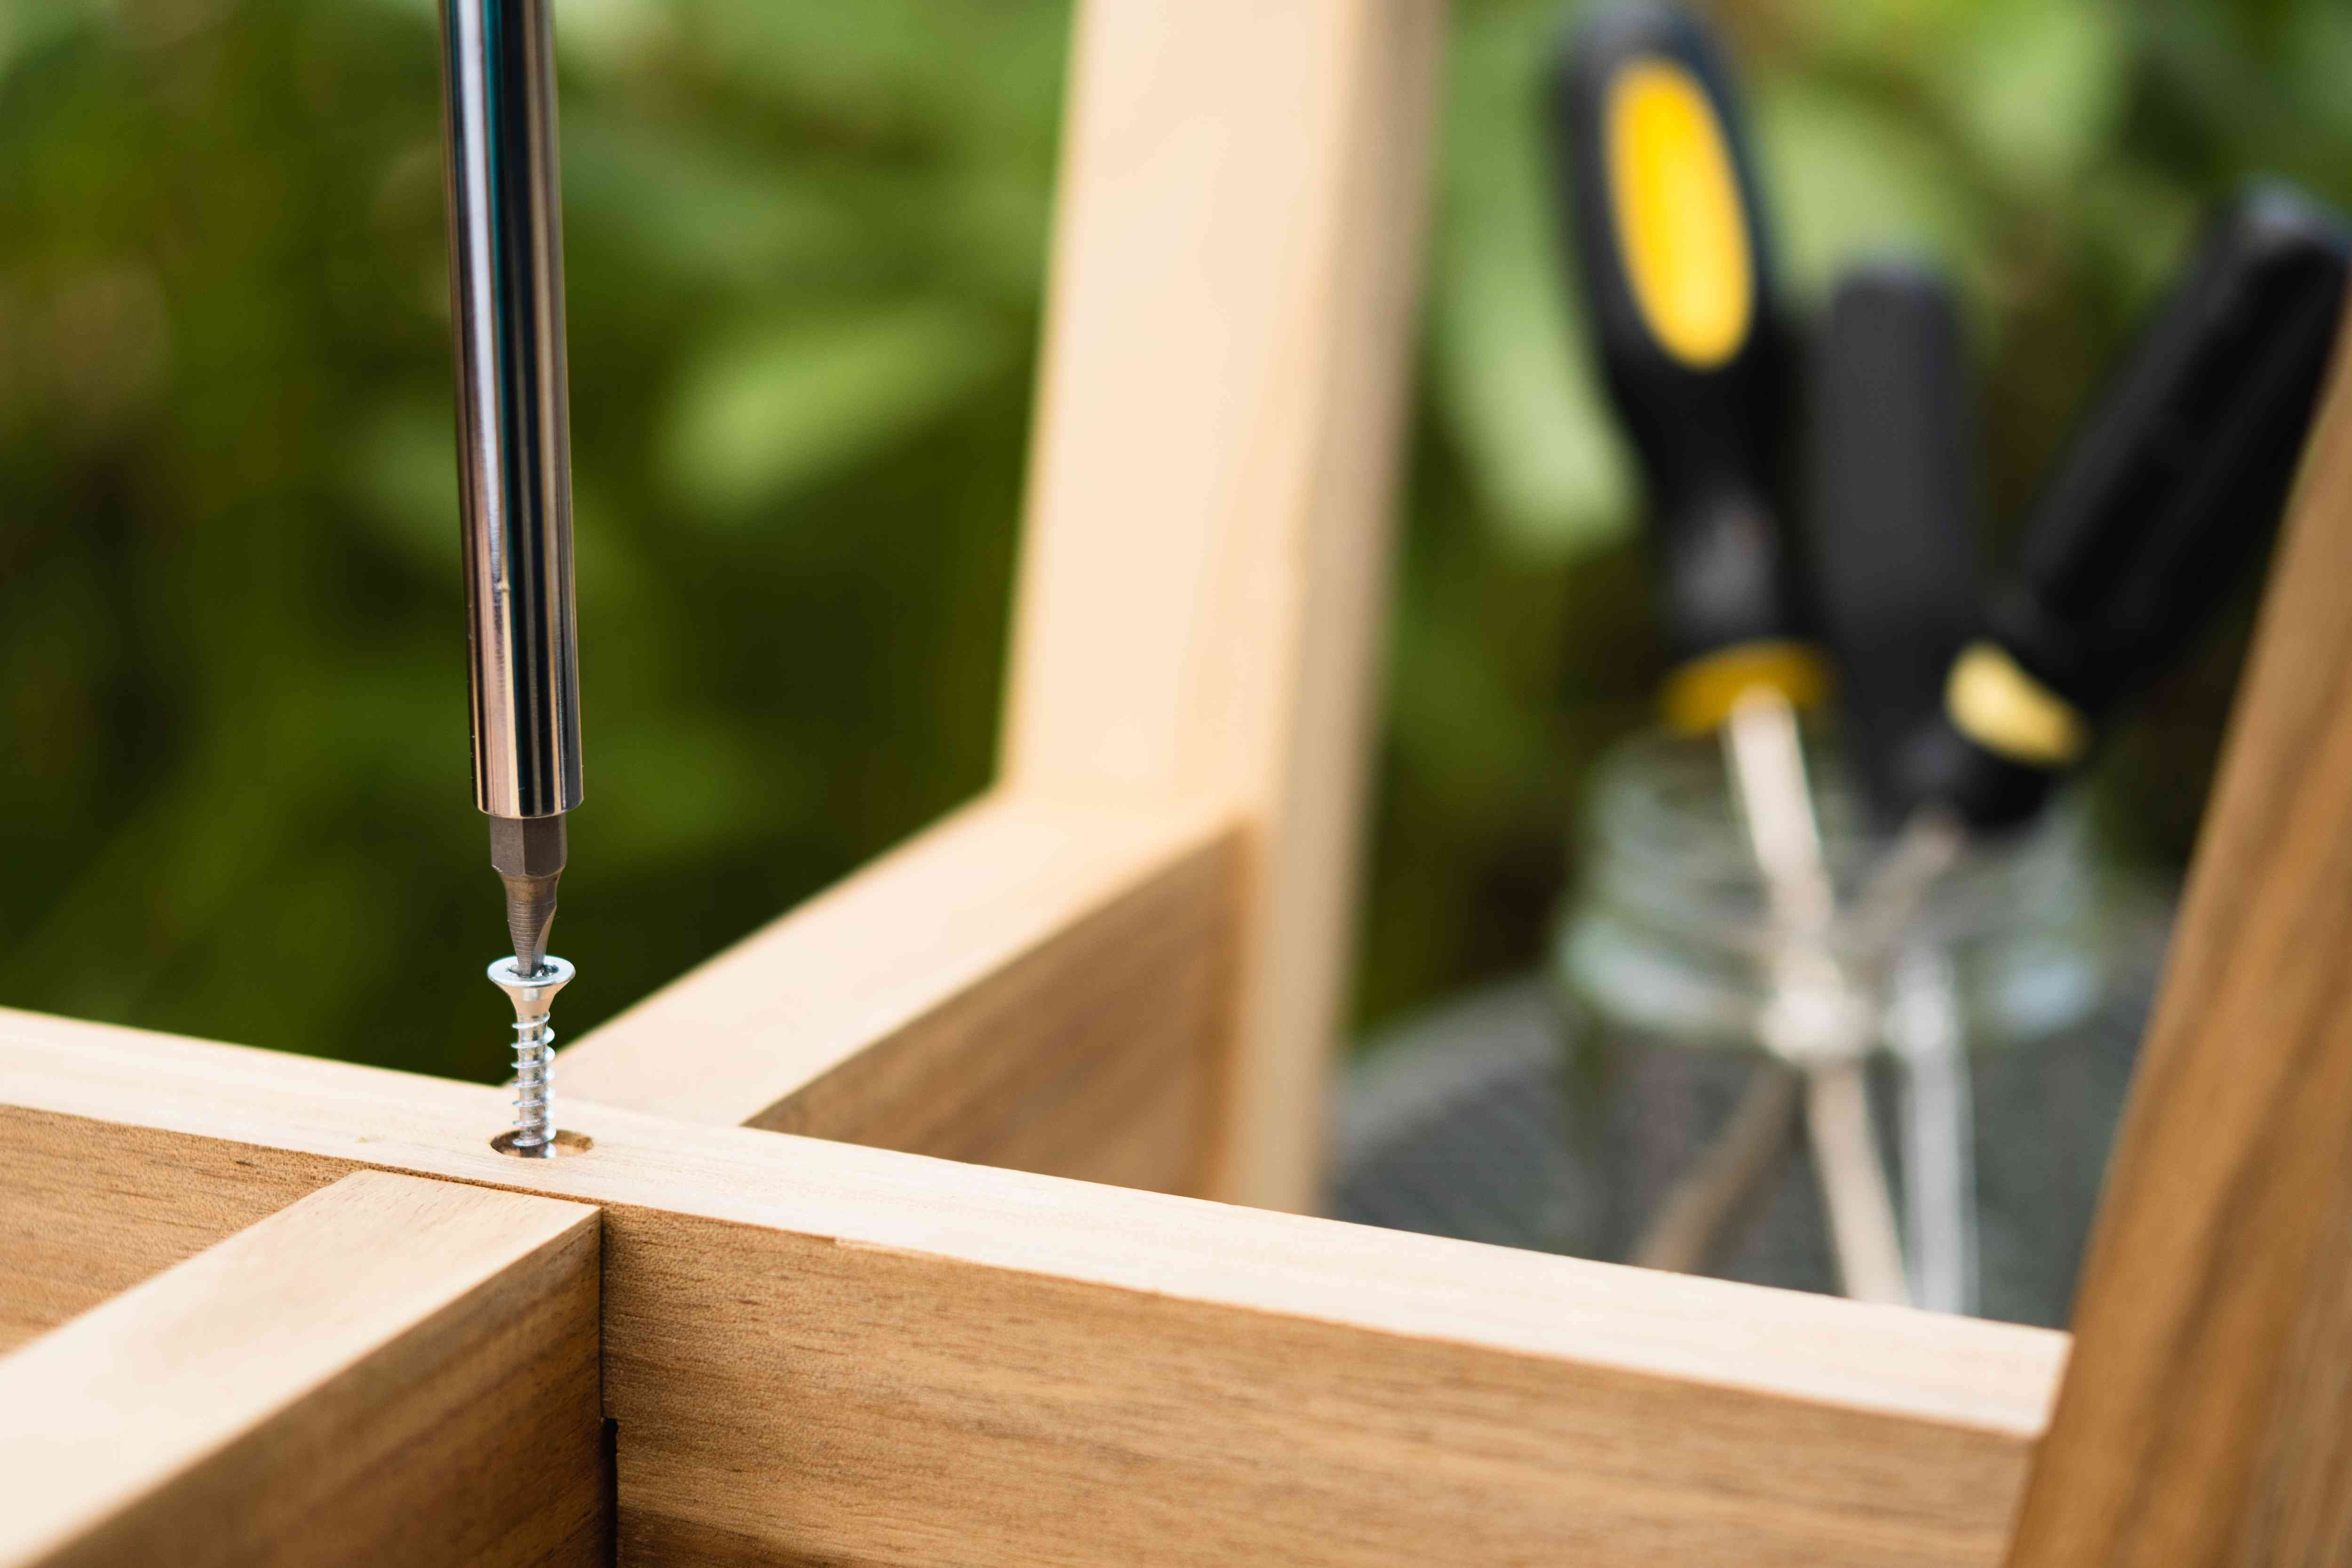 Flat-head screwdriver inserted into stripped screw in wooden fixture